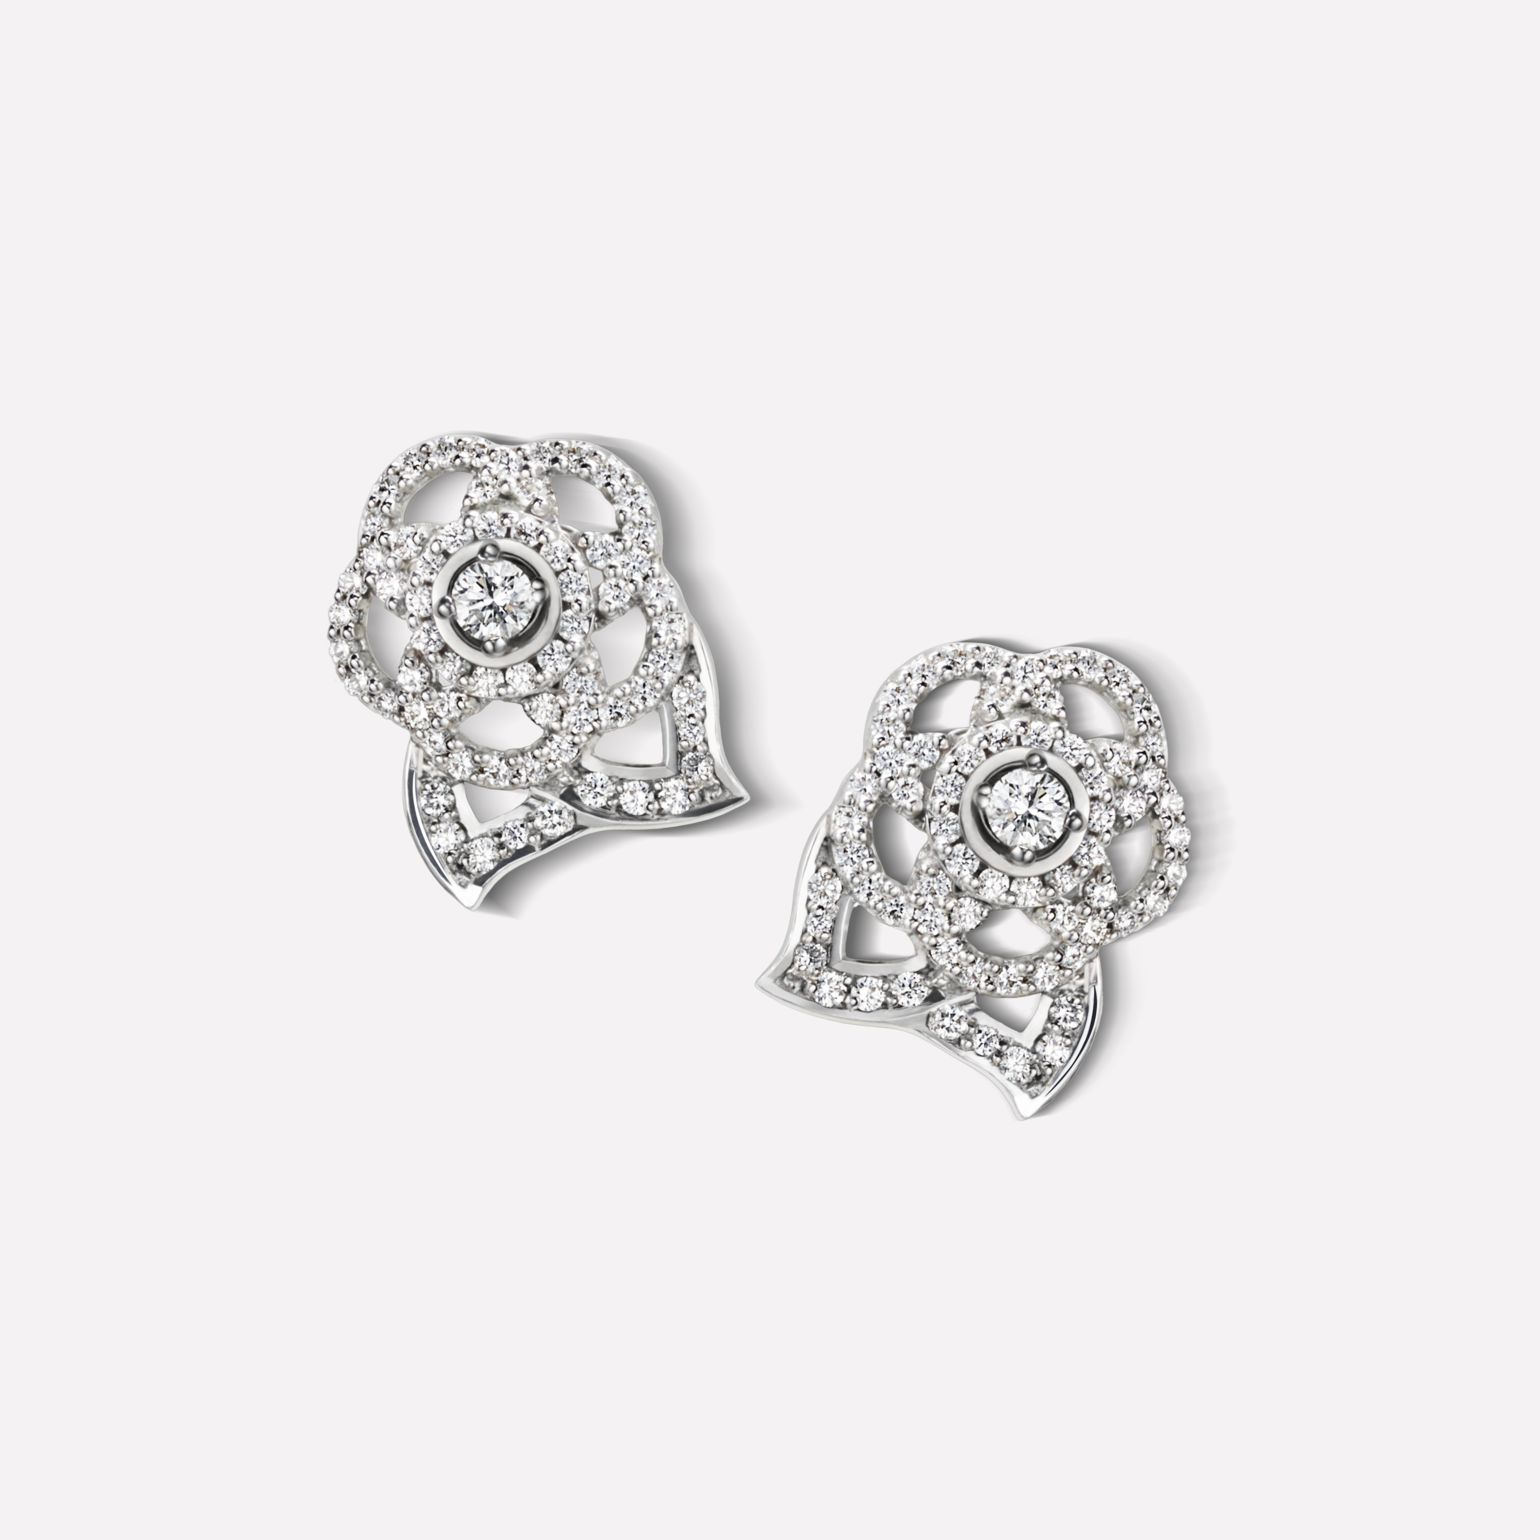 Camélia Earrings Camélia Brodé earrings in 18K white gold, diamonds and central diamond